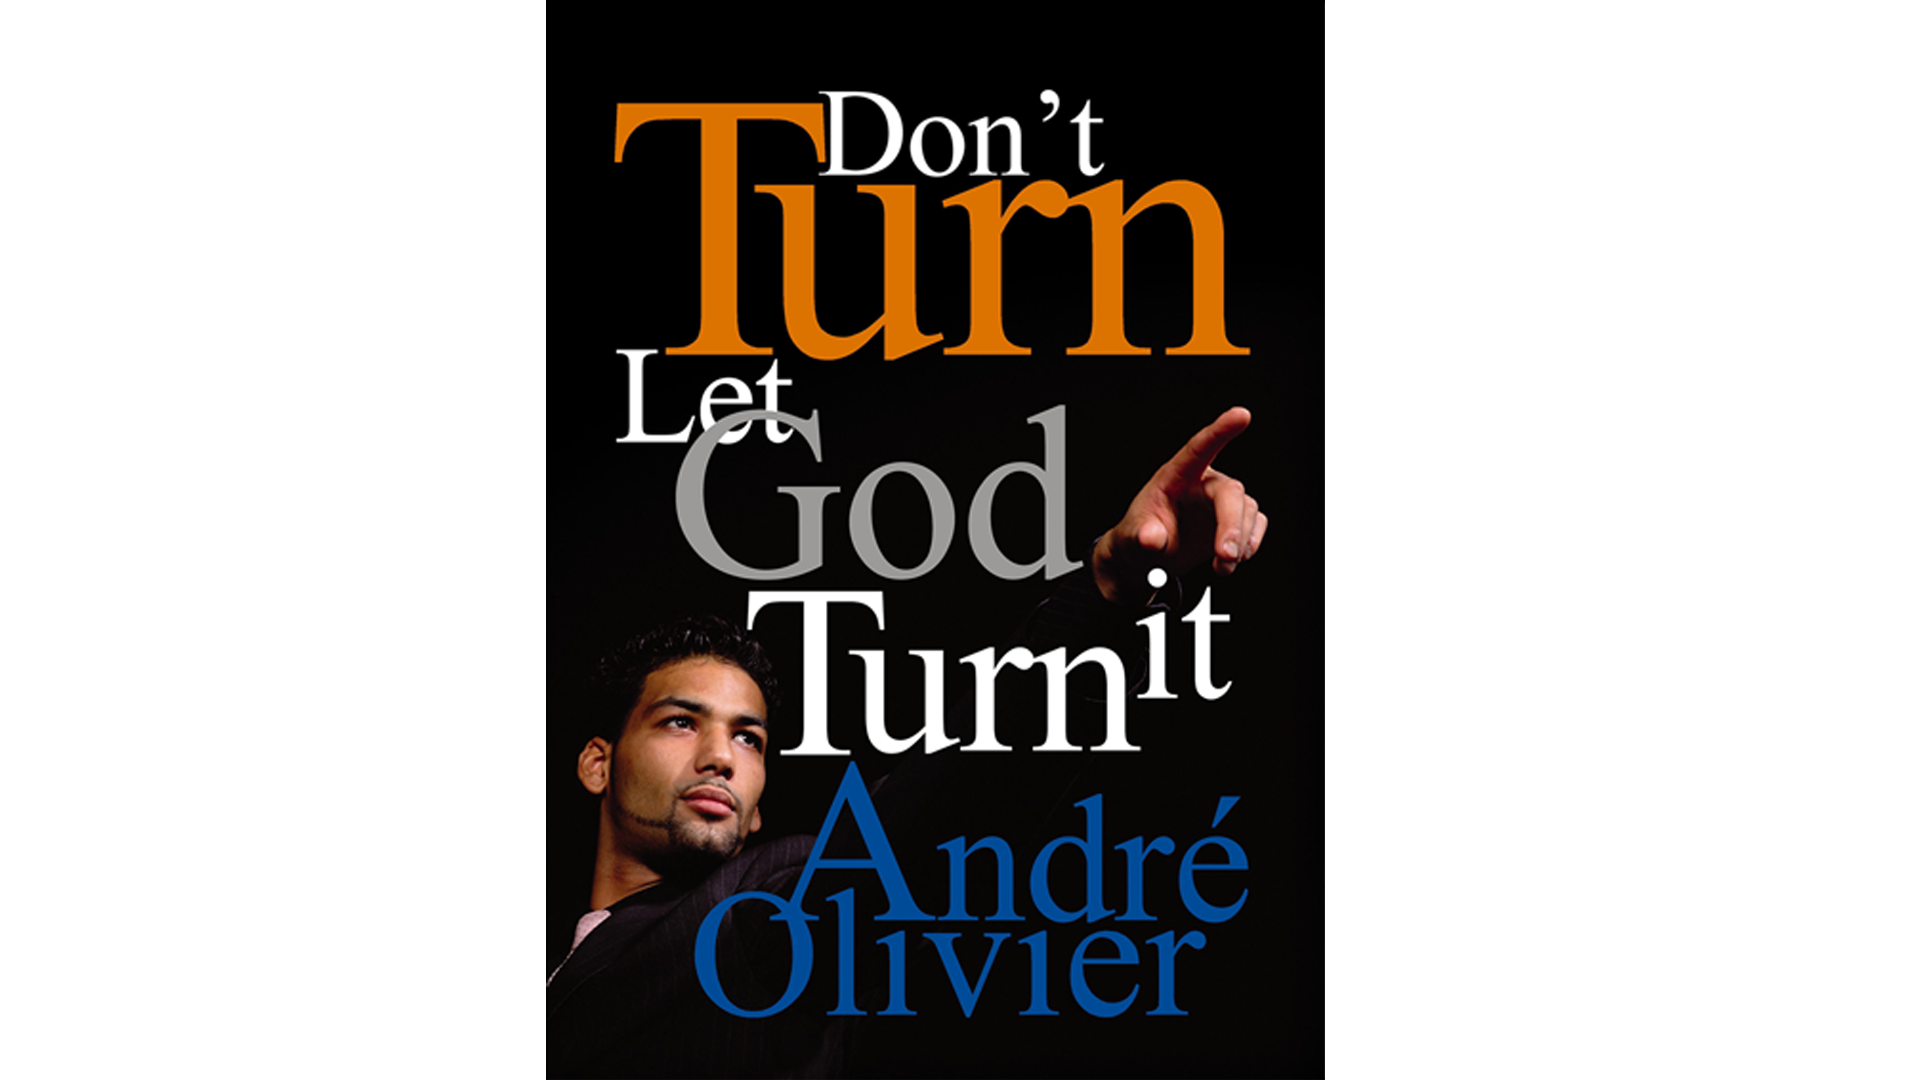 Don't Turn Let God Turn It